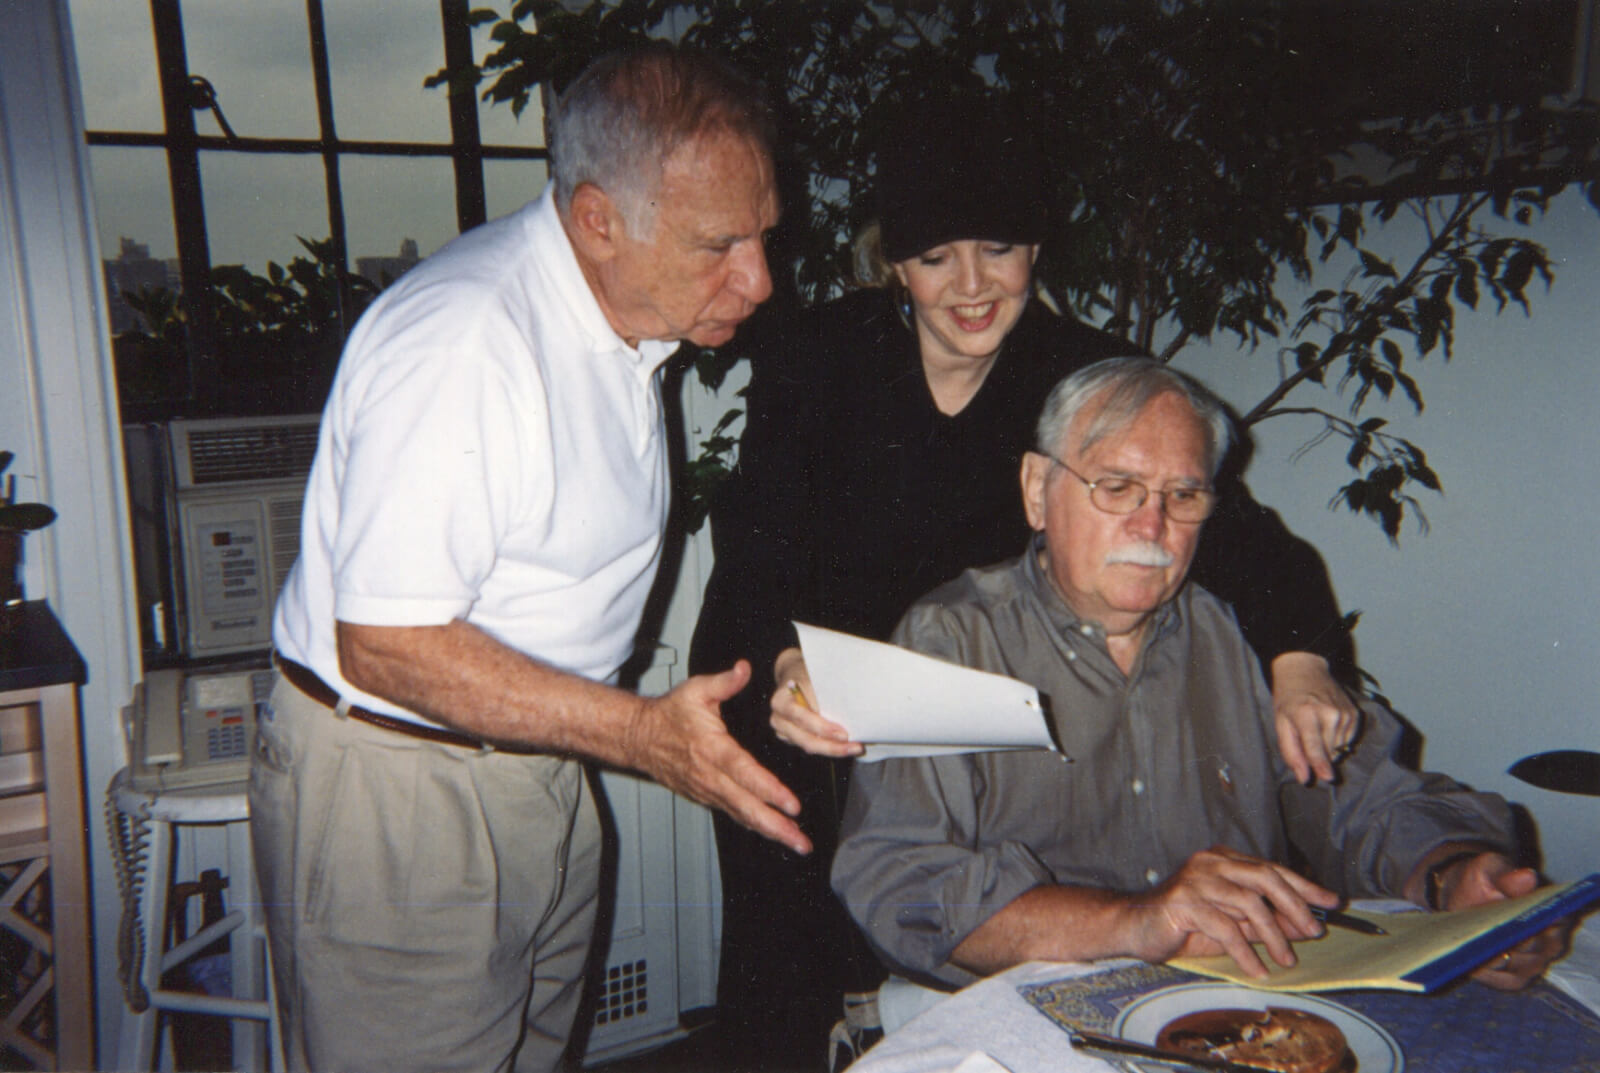 Mel Brooks, Susan Stroman, and Thomas Meehan in an apartment working on the show over food.